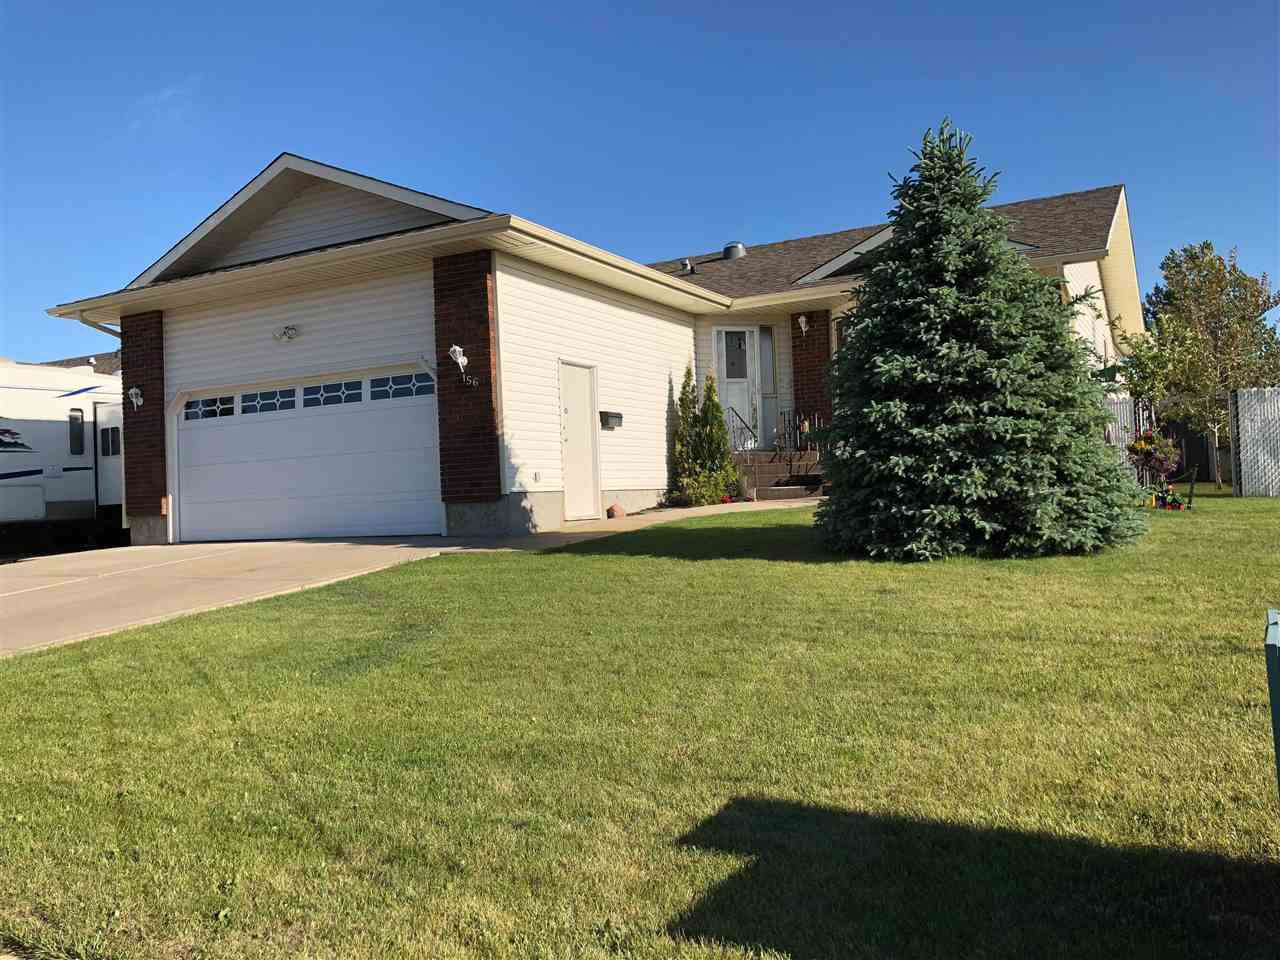 Main Photo: 156 Northbend Drive: Wetaskiwin House for sale : MLS®# E4141000